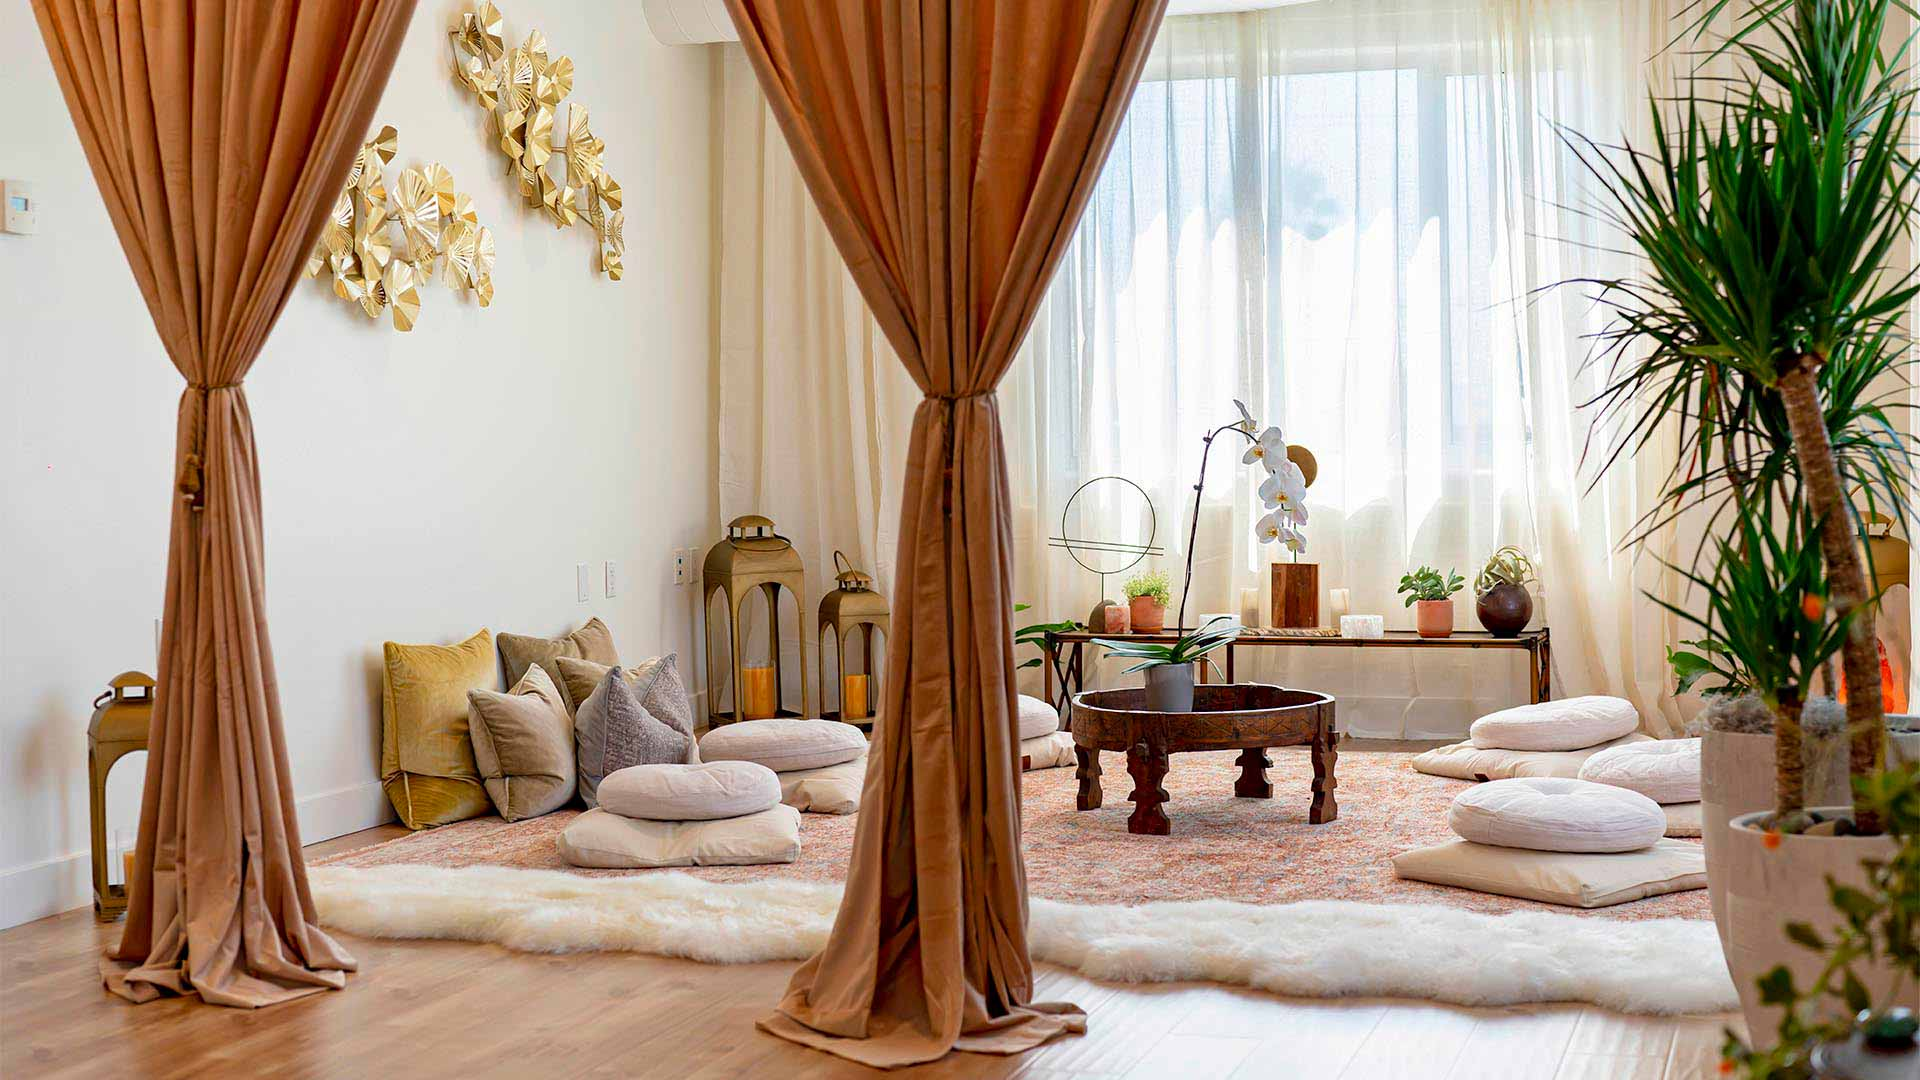 A cozy open room with wooden floor, plants, soft cushions and velvet curtains.